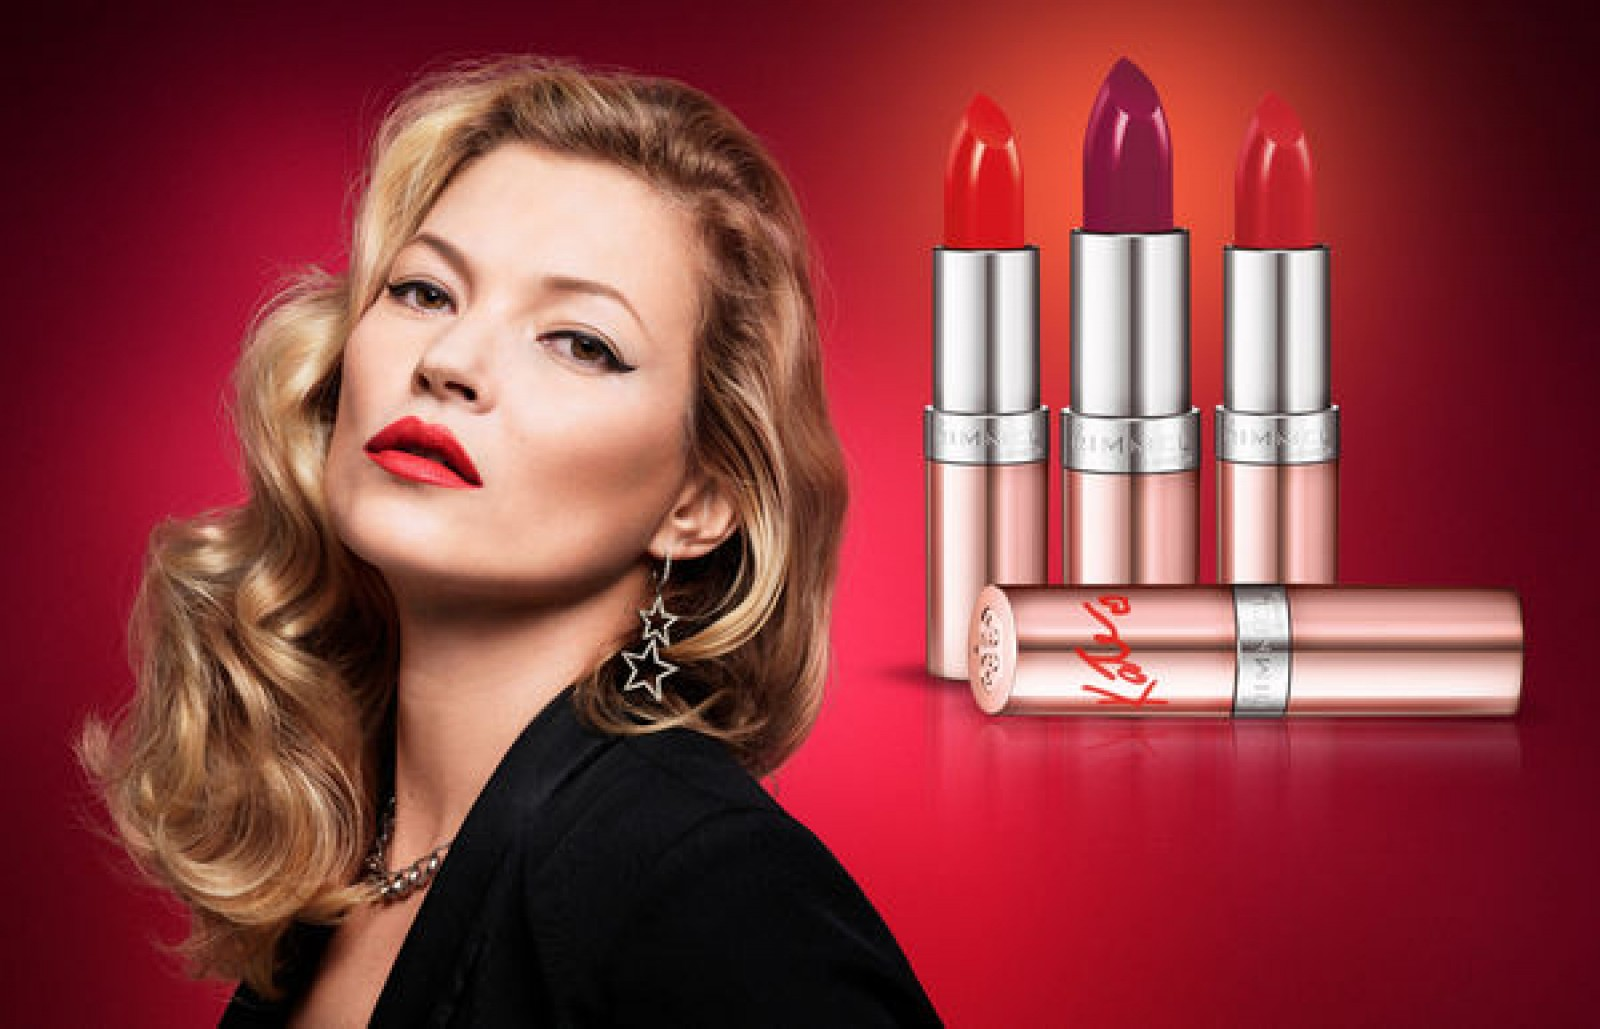 Rimmel-Kate-15th-Red-Kate-model-products-shot